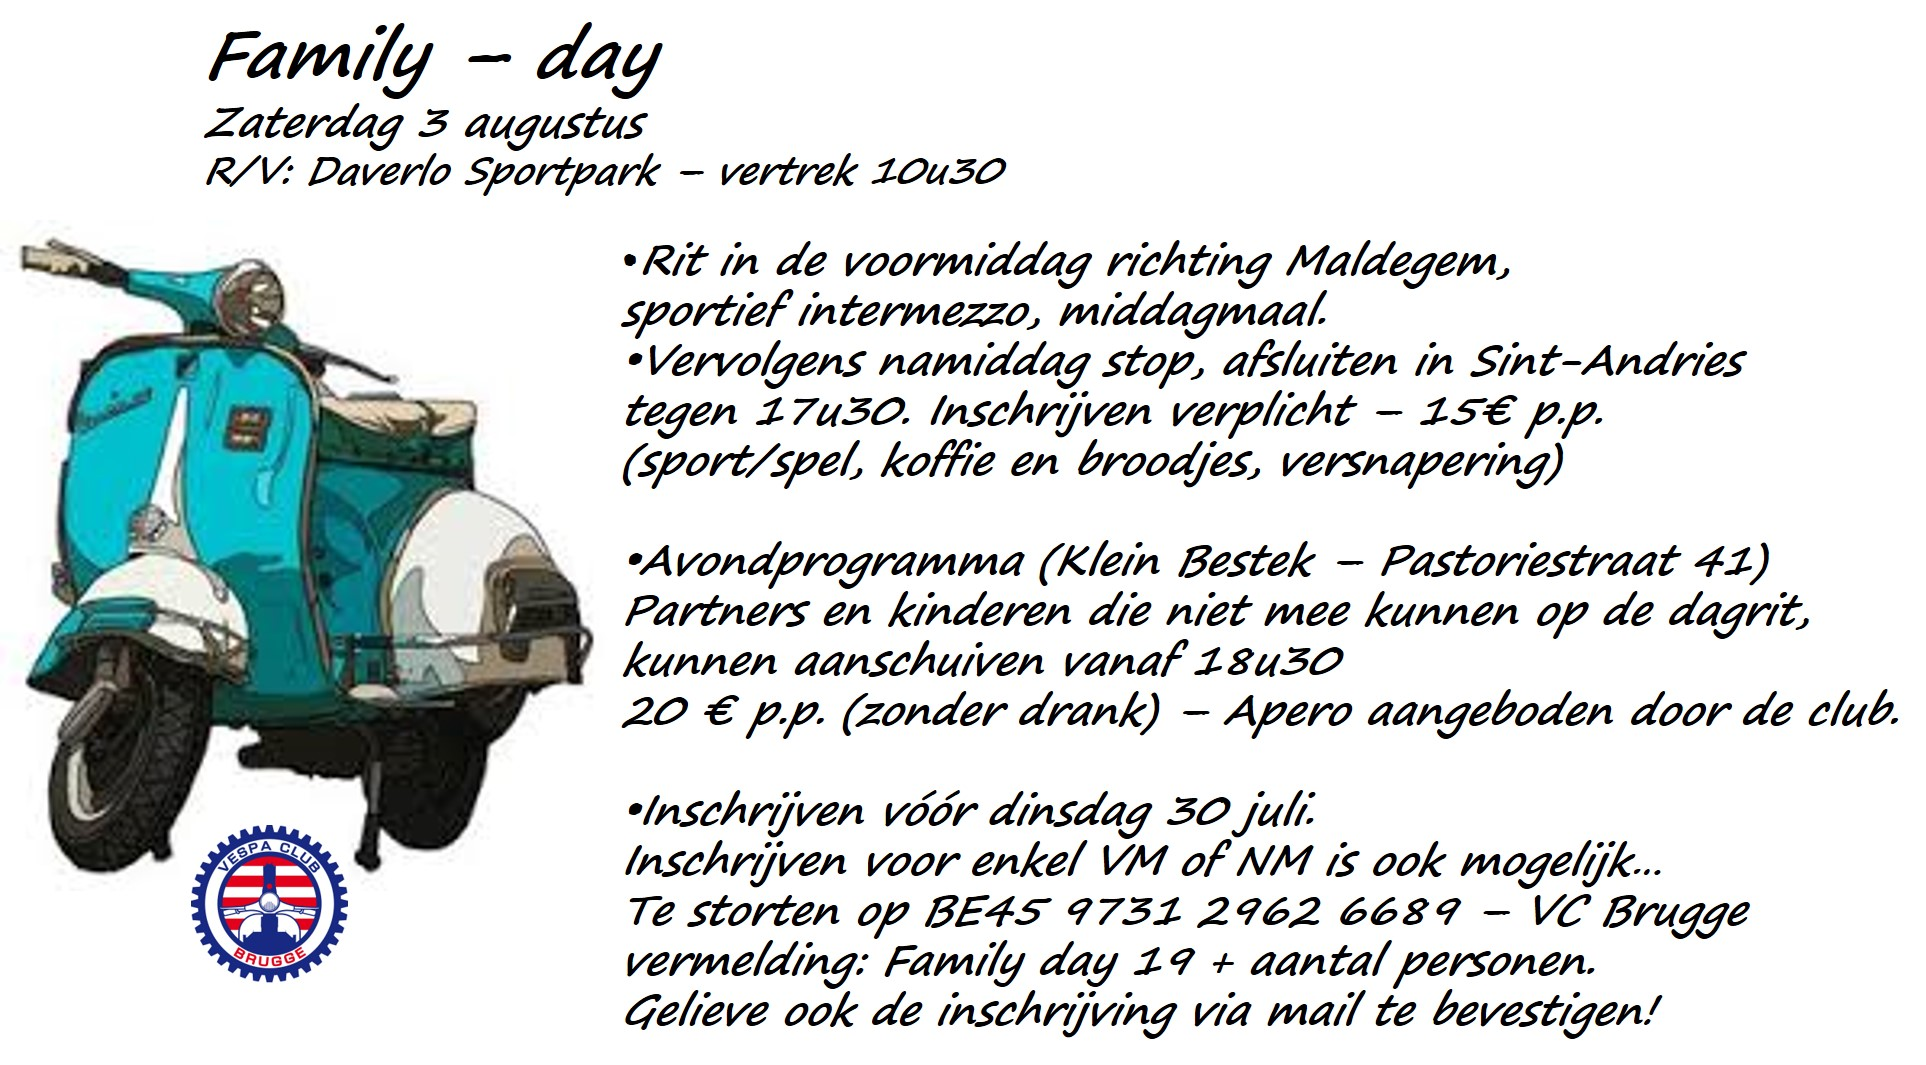 Family_day_-_Zaterdag_3_aug_2019_NL.jpg